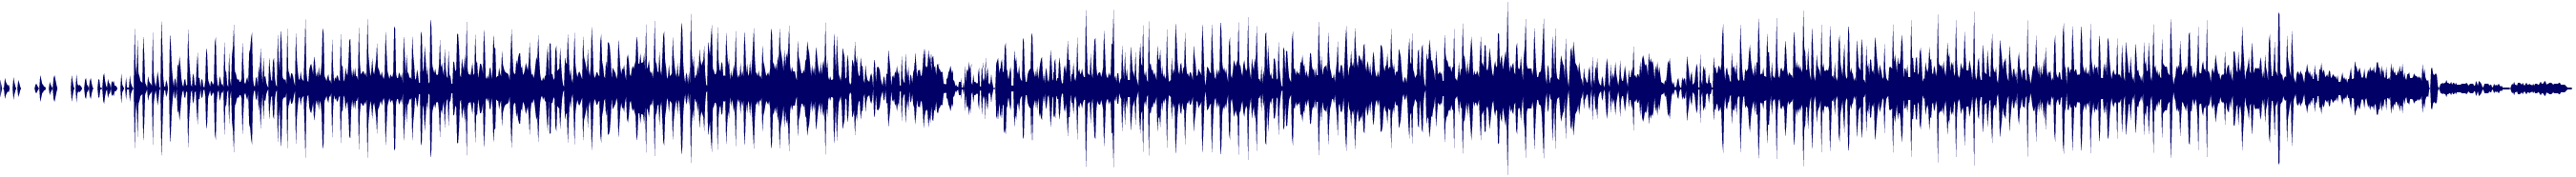 waveform of track #66918